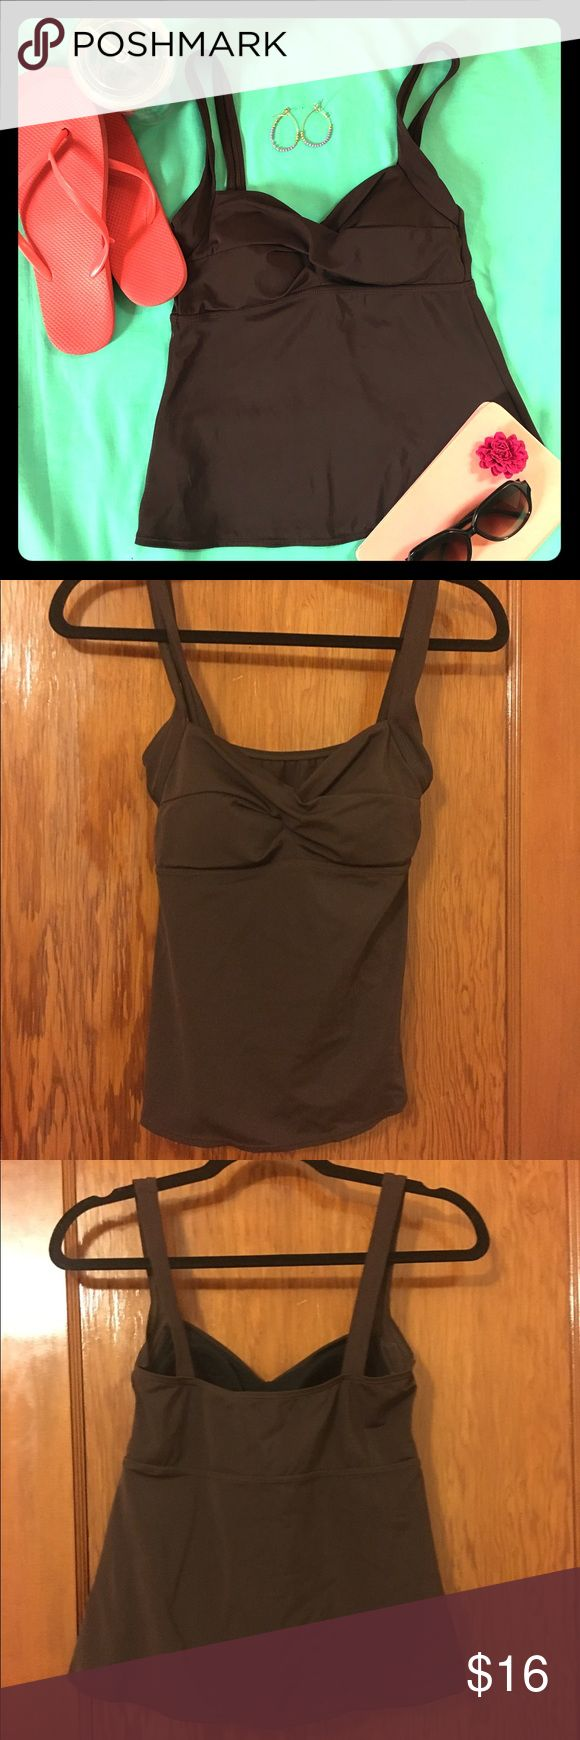 Cazimi Brown Tankini Top Size 6 This Cazimi Brown Tankini Top Size 6 is like new. It can be perfectly paired with any bottom. CAZIMI Swim